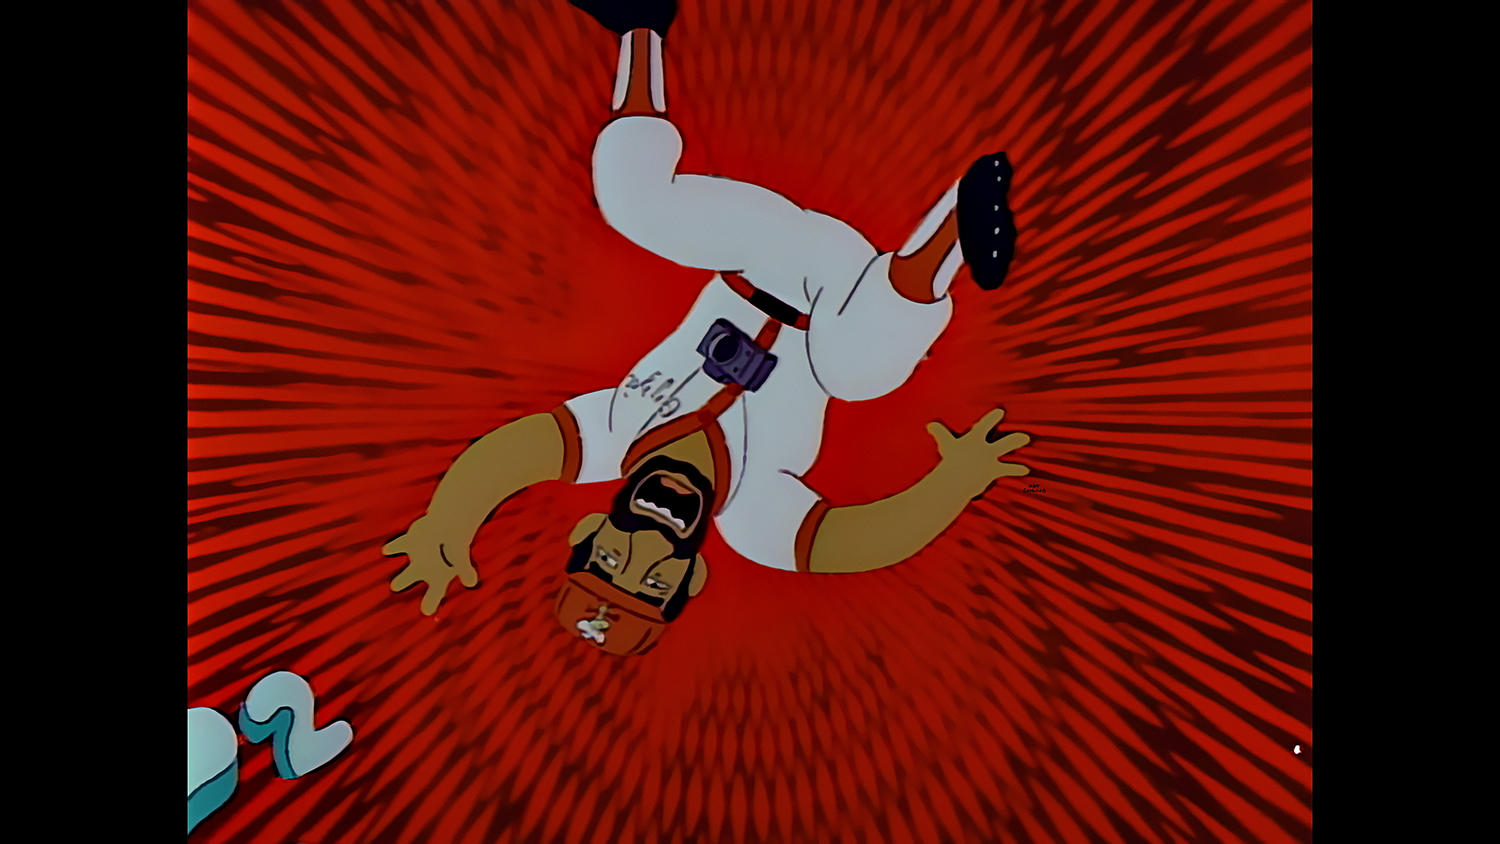 """Ozzie Smith, pictured above as he falls into the Springfield Mystery Spot, will be among the Hall of Famers discussing THE SIMPSONS """"Homer at the Bat"""" episode on May 27 at the Hall of Fame. (Photo Courtesy of FOX)"""